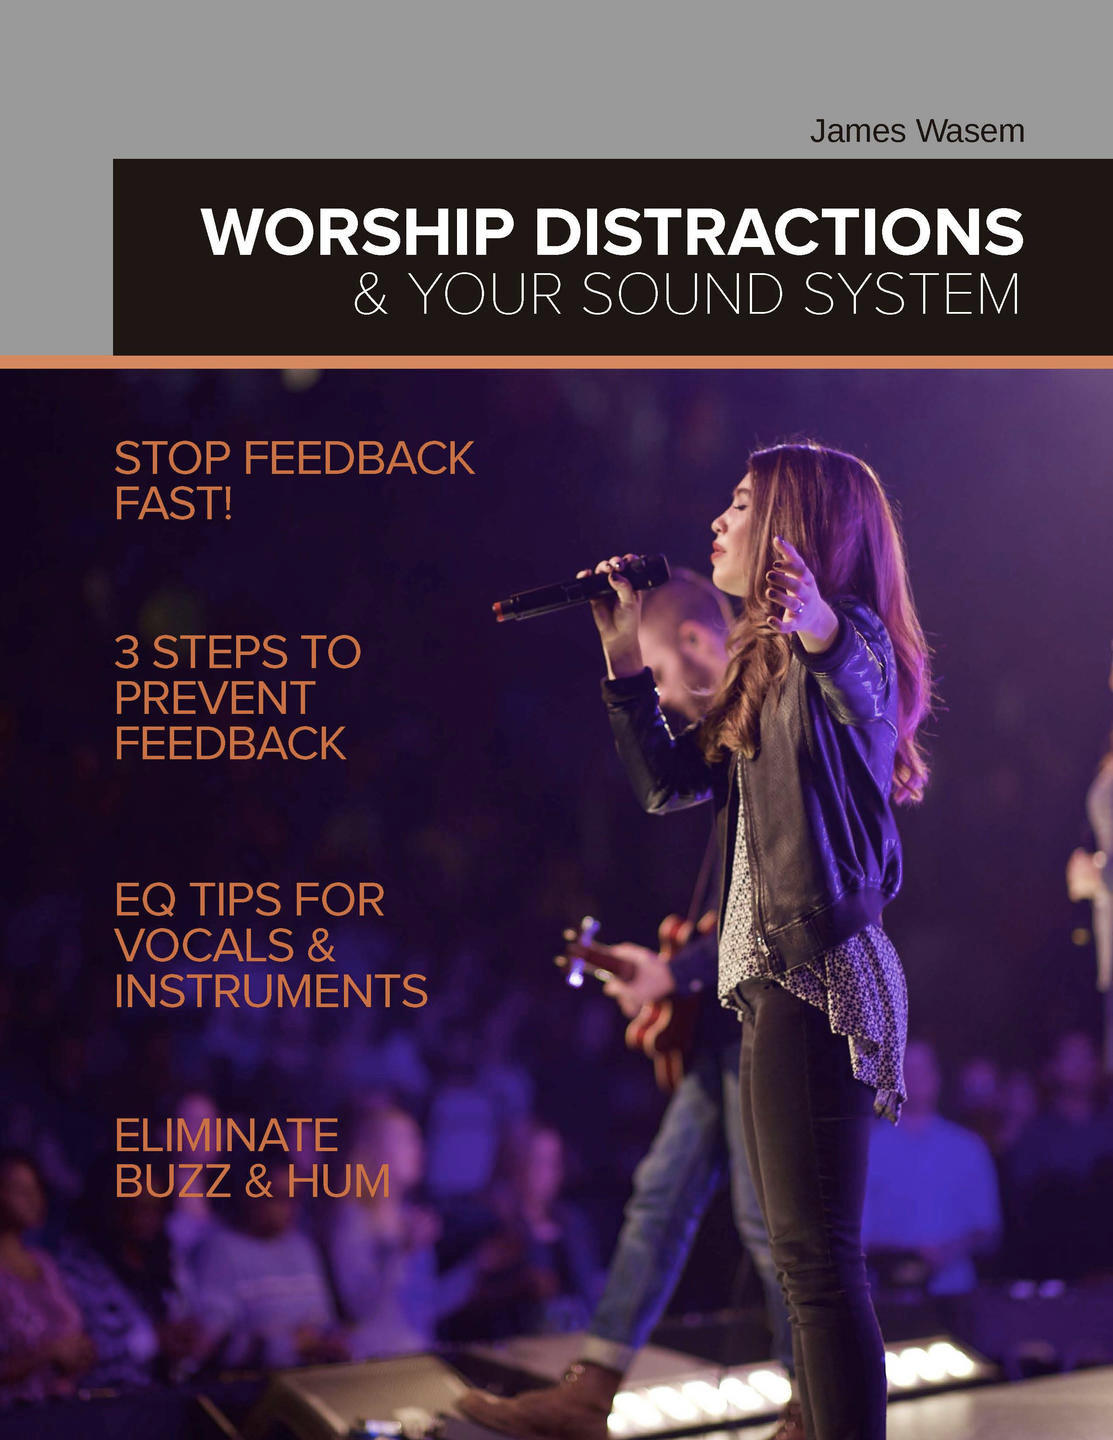 Worship Distractions & Your Sound System free guide from Great Church Sound